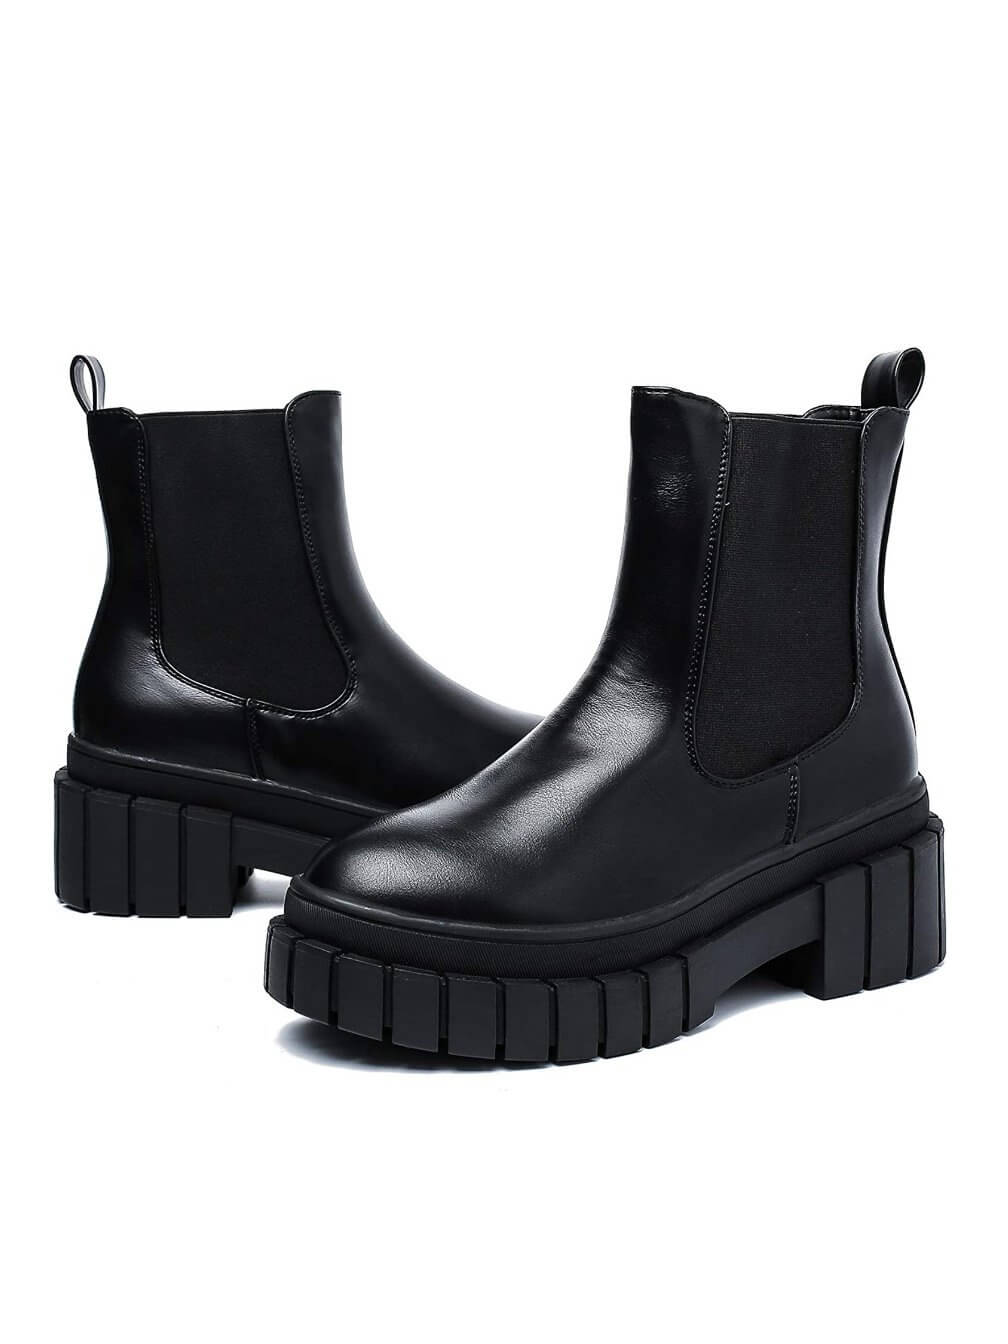 "Black chunky platform rocker boots, 3 ""heel, imitation leather and ankle height."